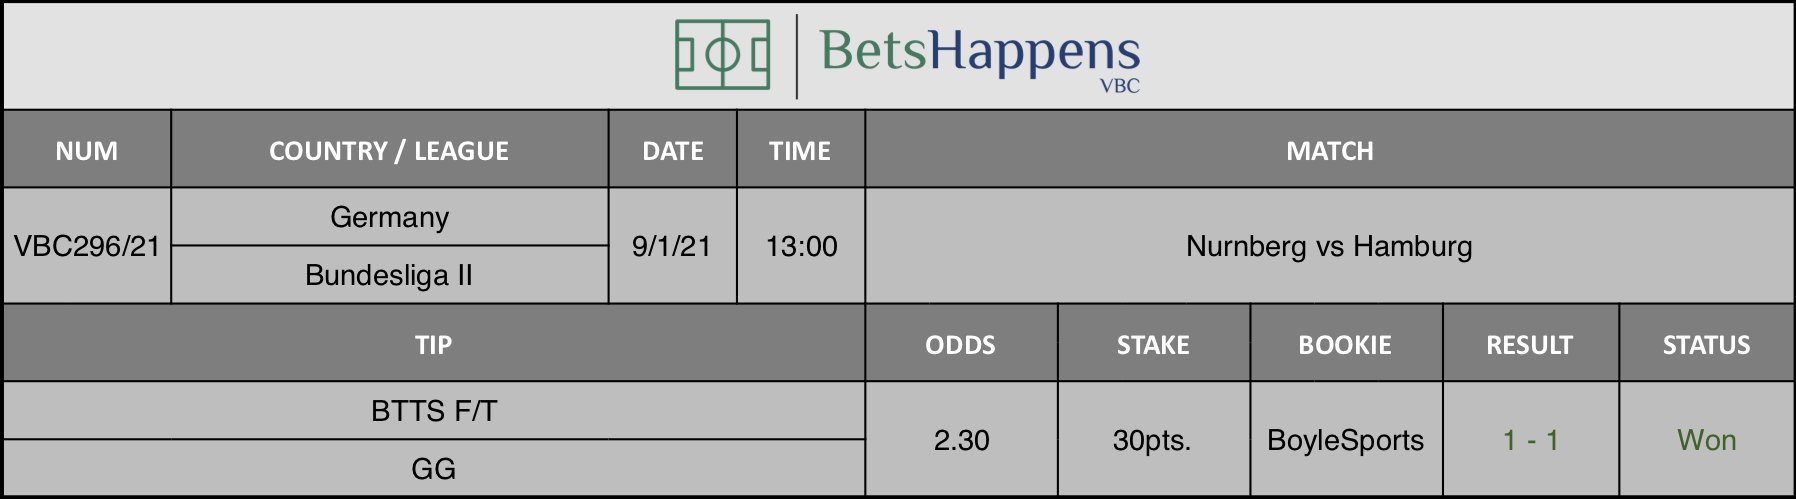 Results of our tip for the Nurnberg vs Hamburg  match where BTTS F/T  GG is recommended.